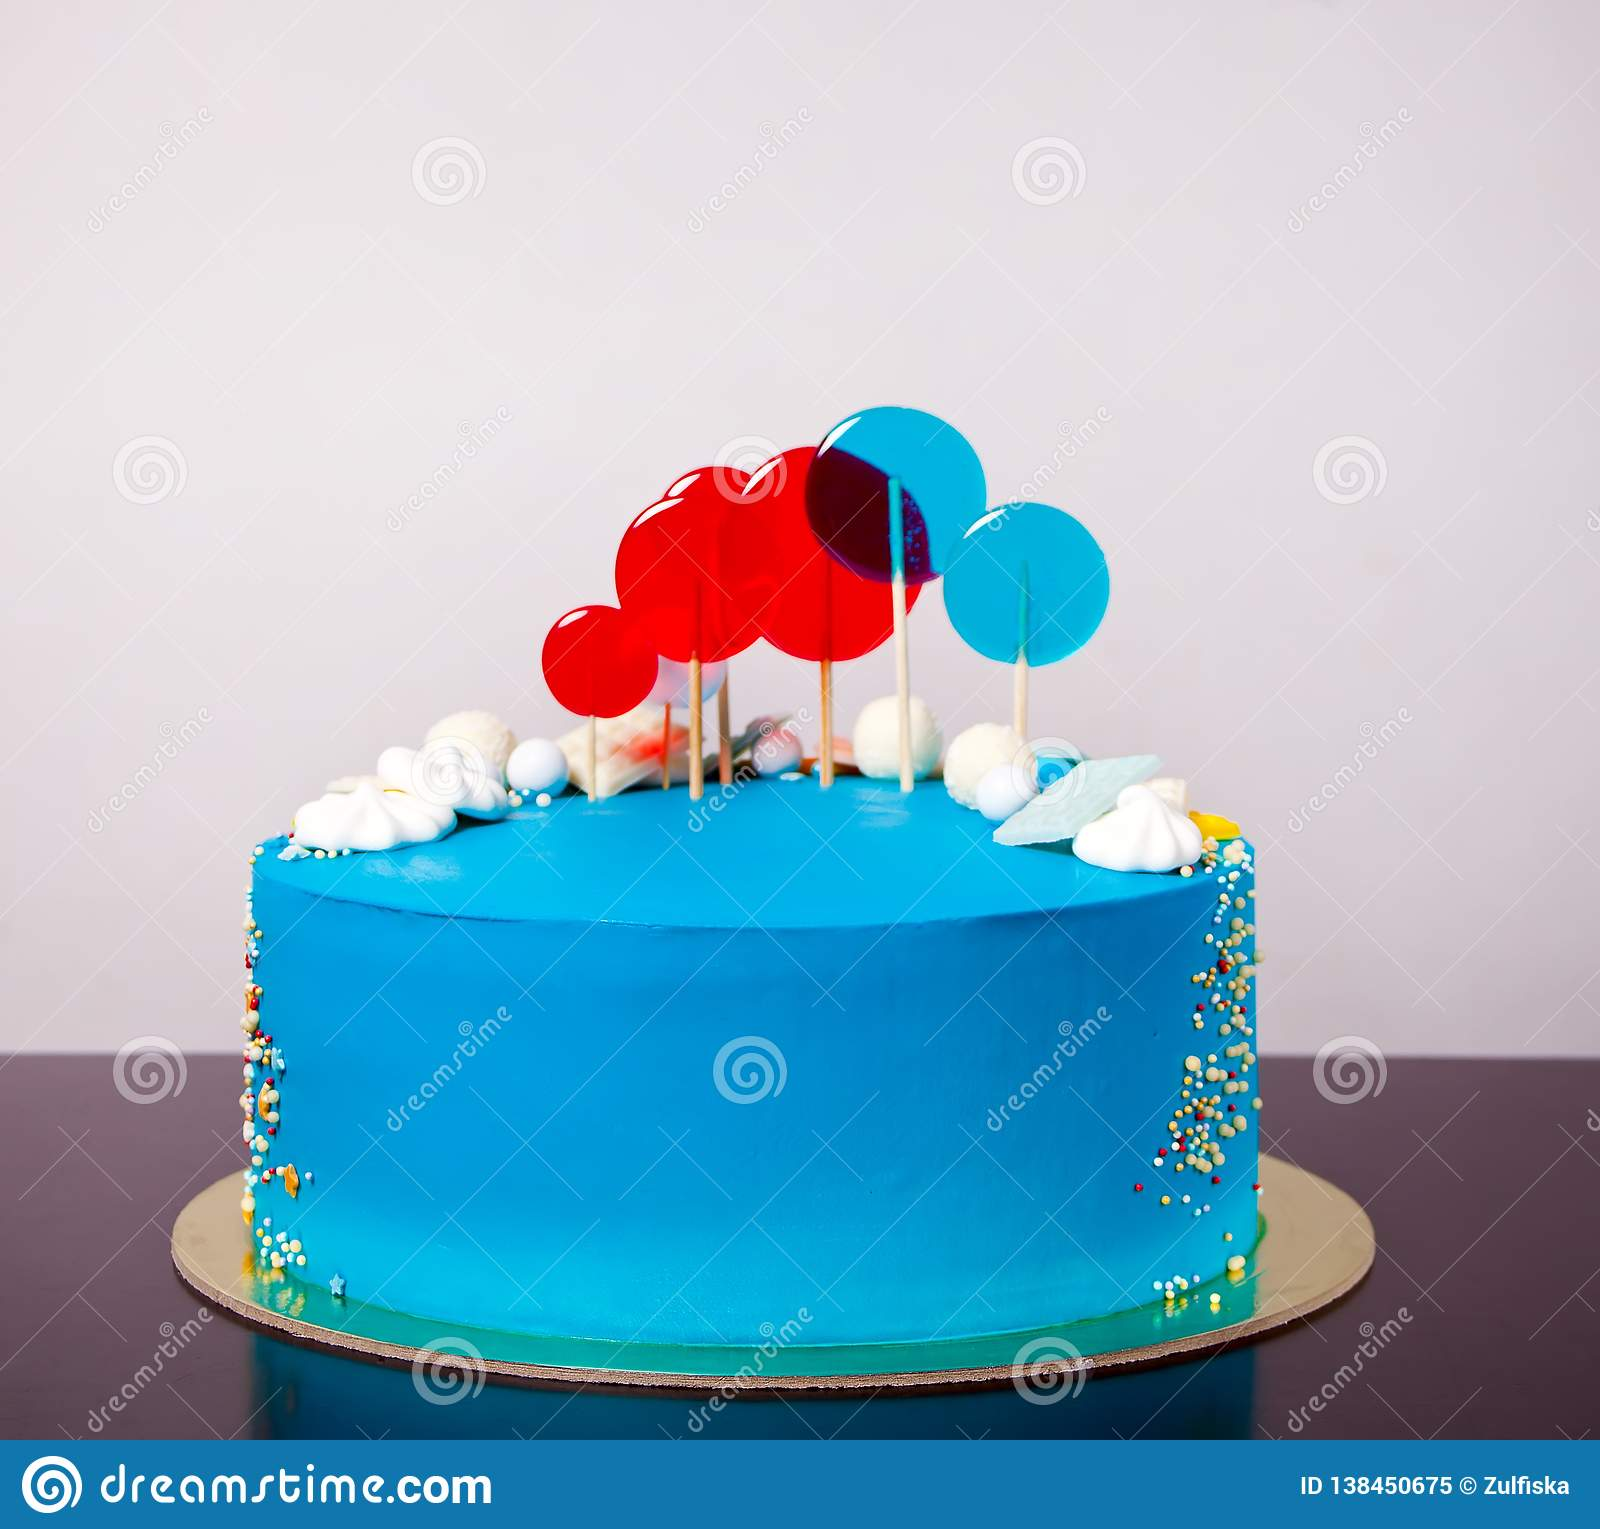 Miraculous Blue Buttercream Birthday Cake With Colorful Lollipops Stock Image Birthday Cards Printable Inklcafe Filternl